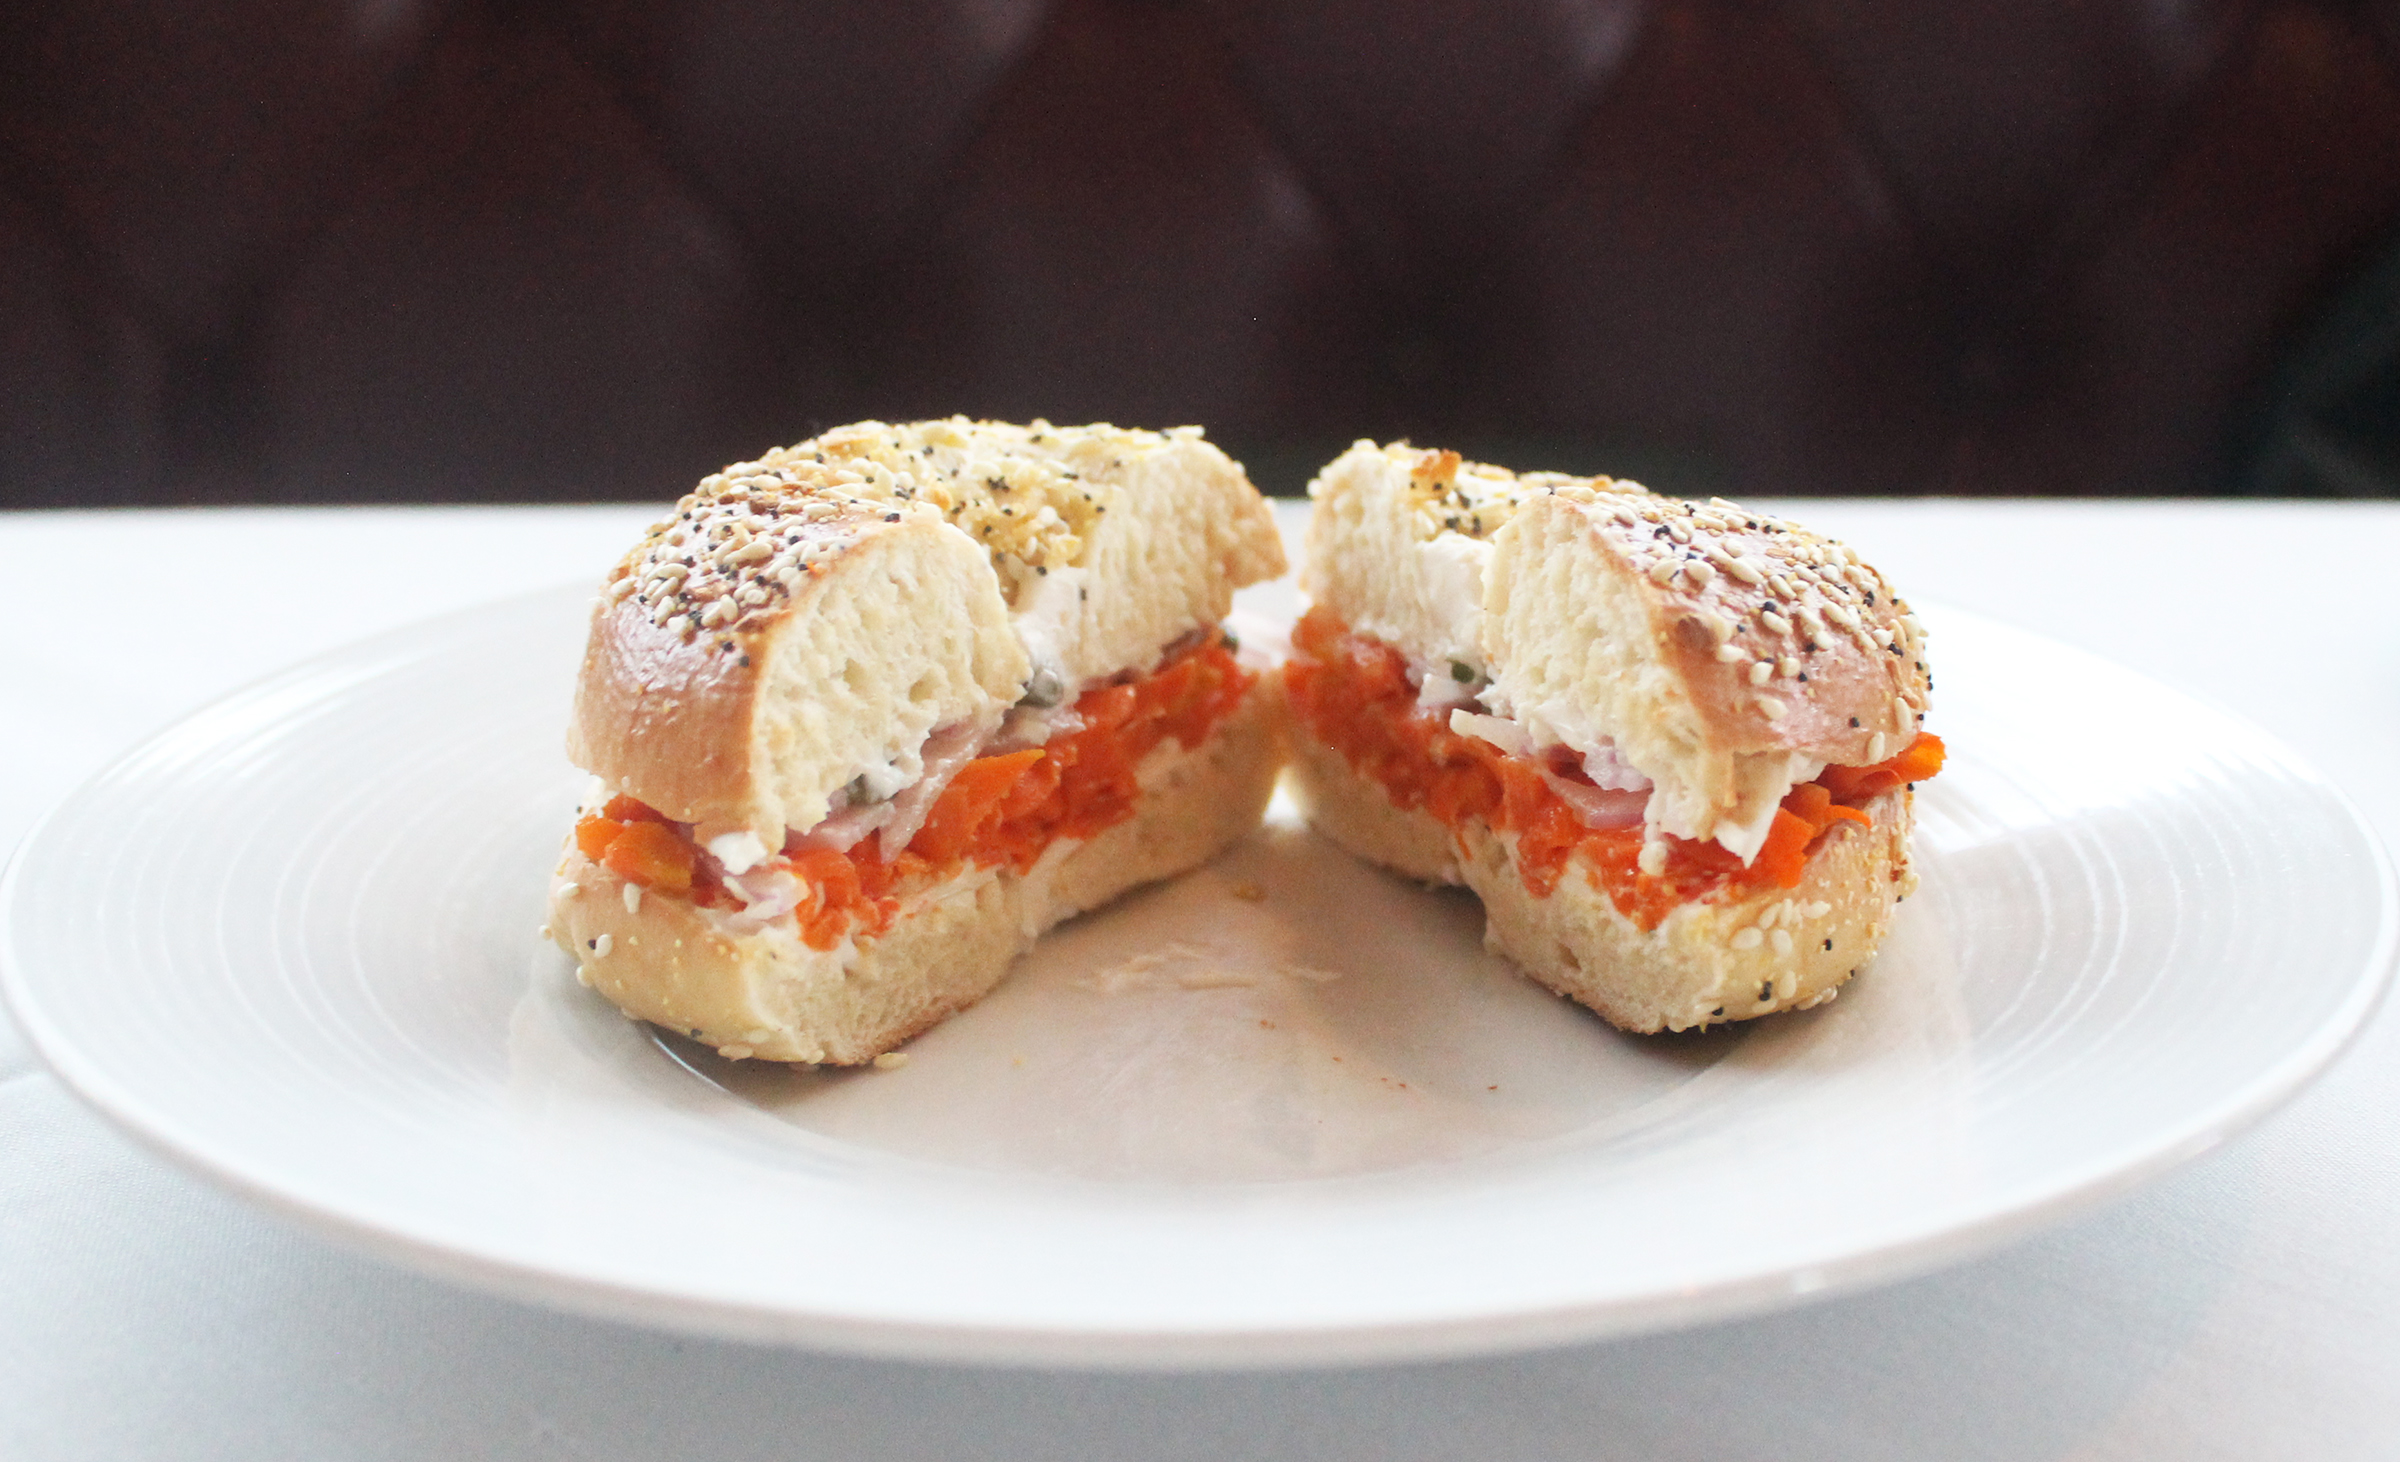 Jann's Bagel: everything bagel / almond cream cheese / smoked heirloom carrot lox / shaved red onions / capers